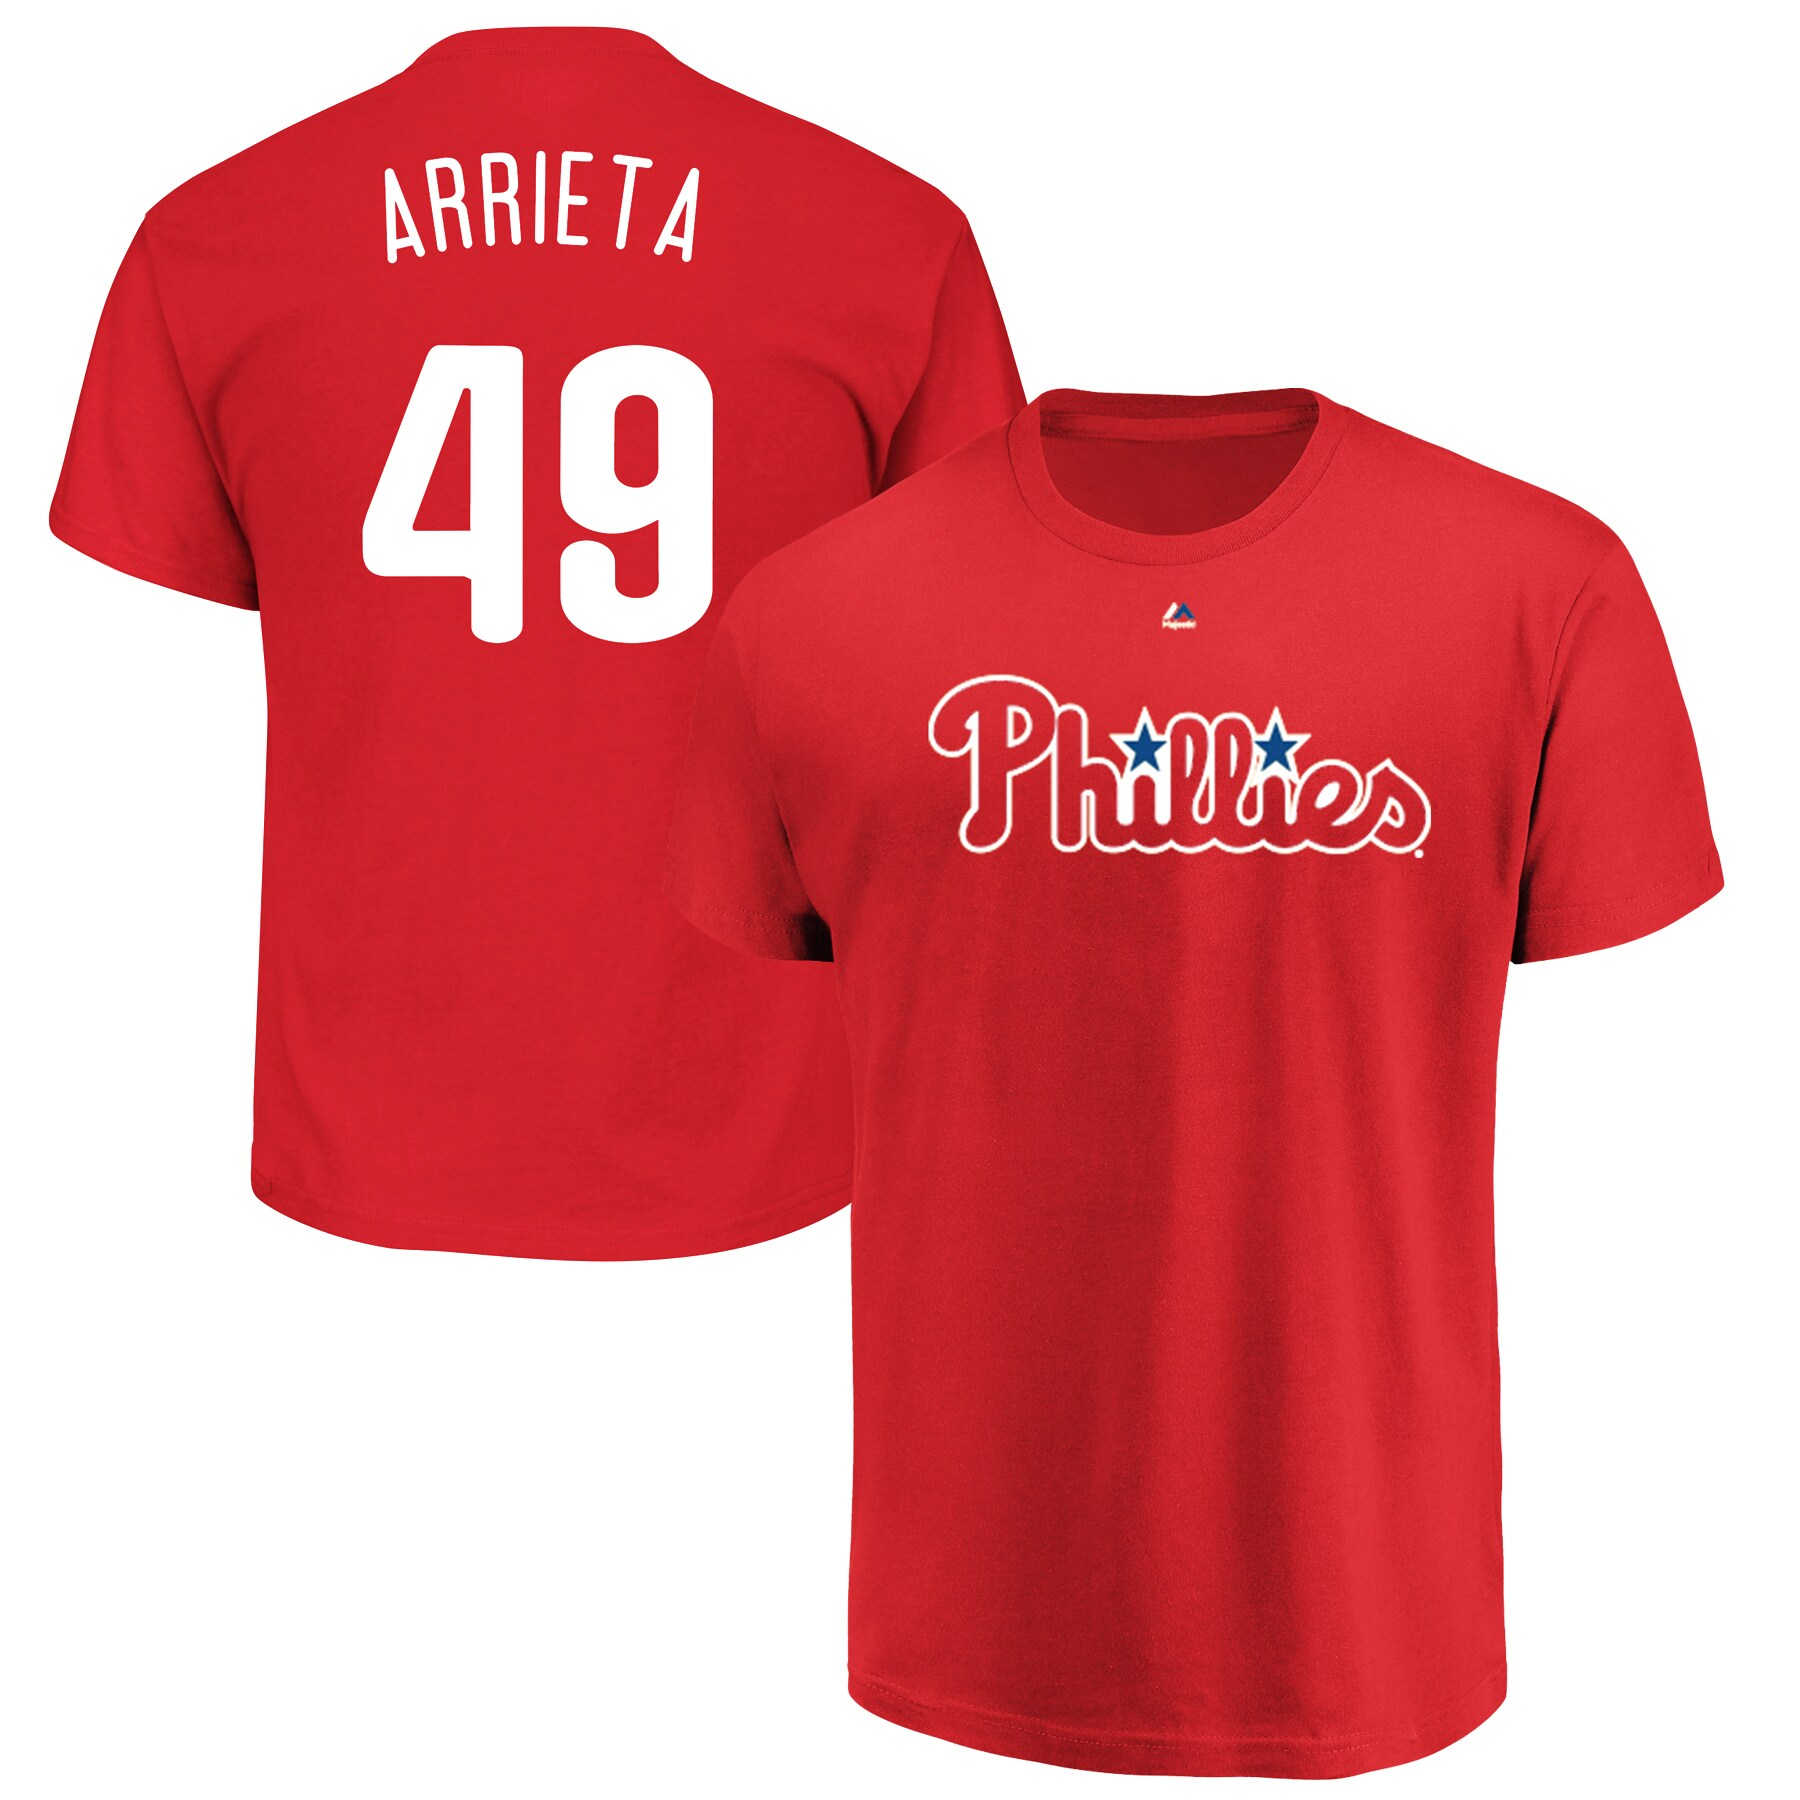 Jake Arrieta Philadelphia Phillies Majestic Official Name & Number T-Shirt - Red